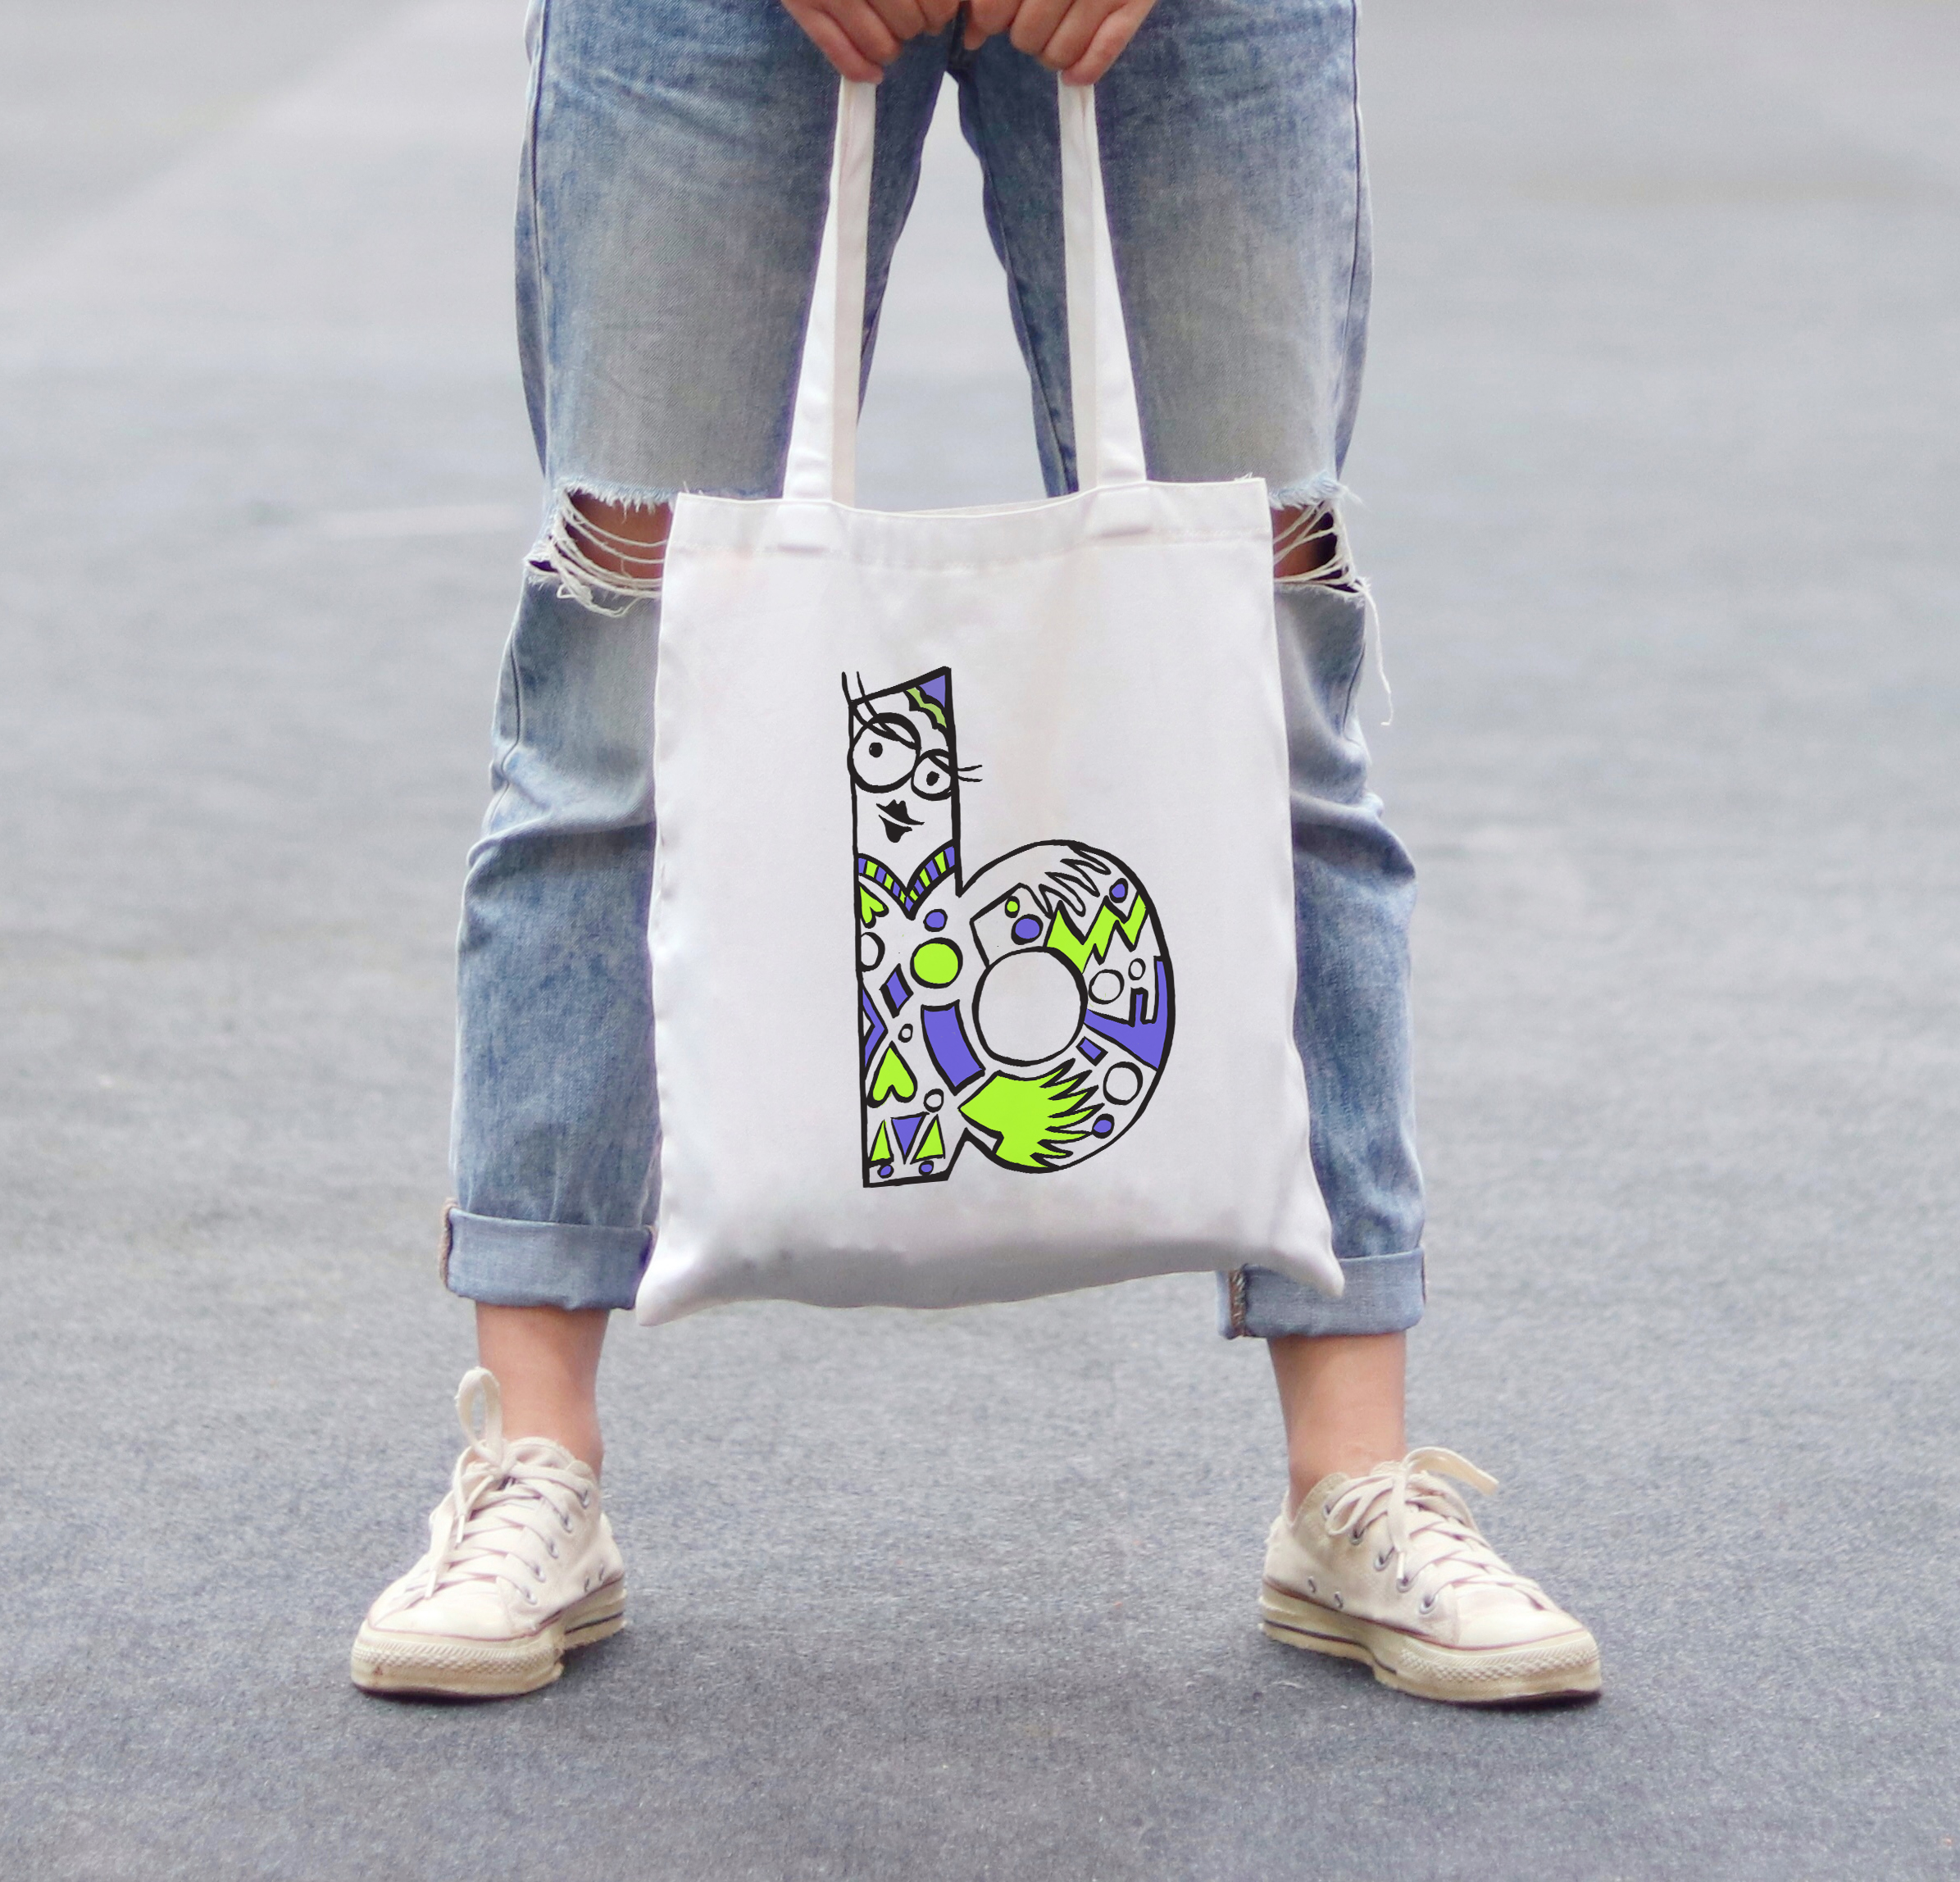 Typo collection - t-shirts & bags 6